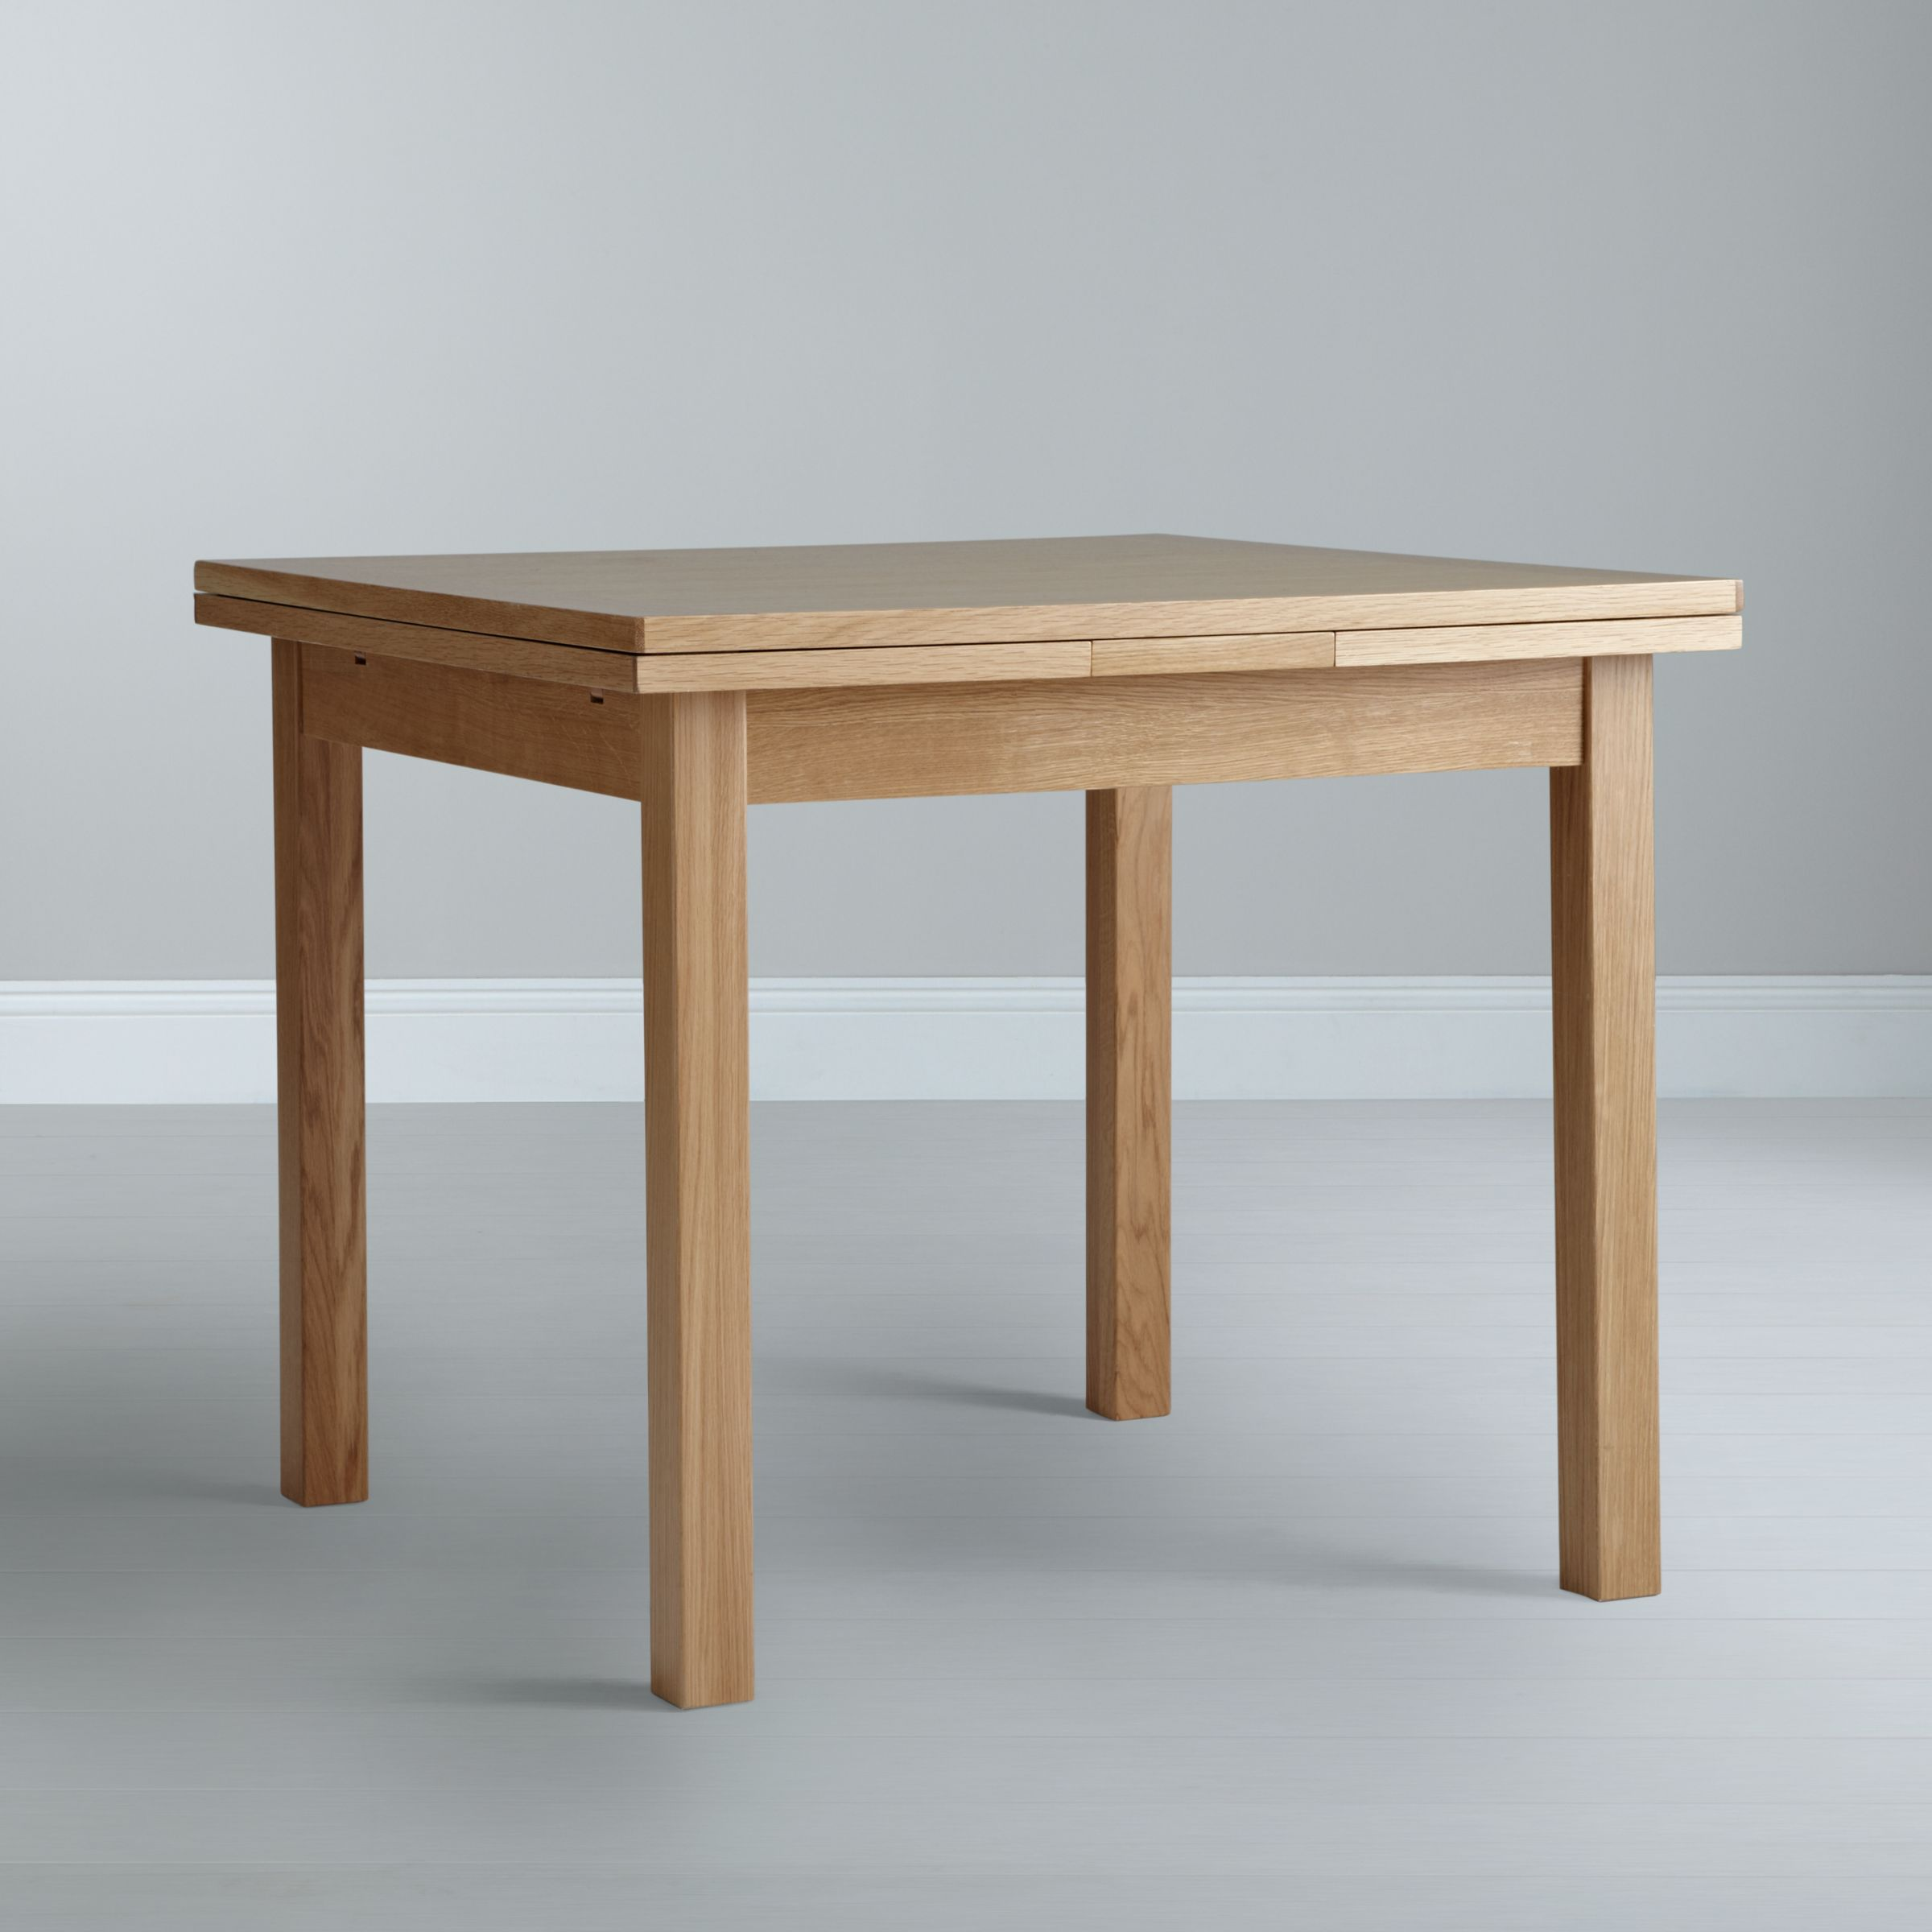 Square extending dining table Shop for cheap Furniture  : 231958456zoom from priceinspector.co.uk size 1600 x 1600 jpeg 188kB